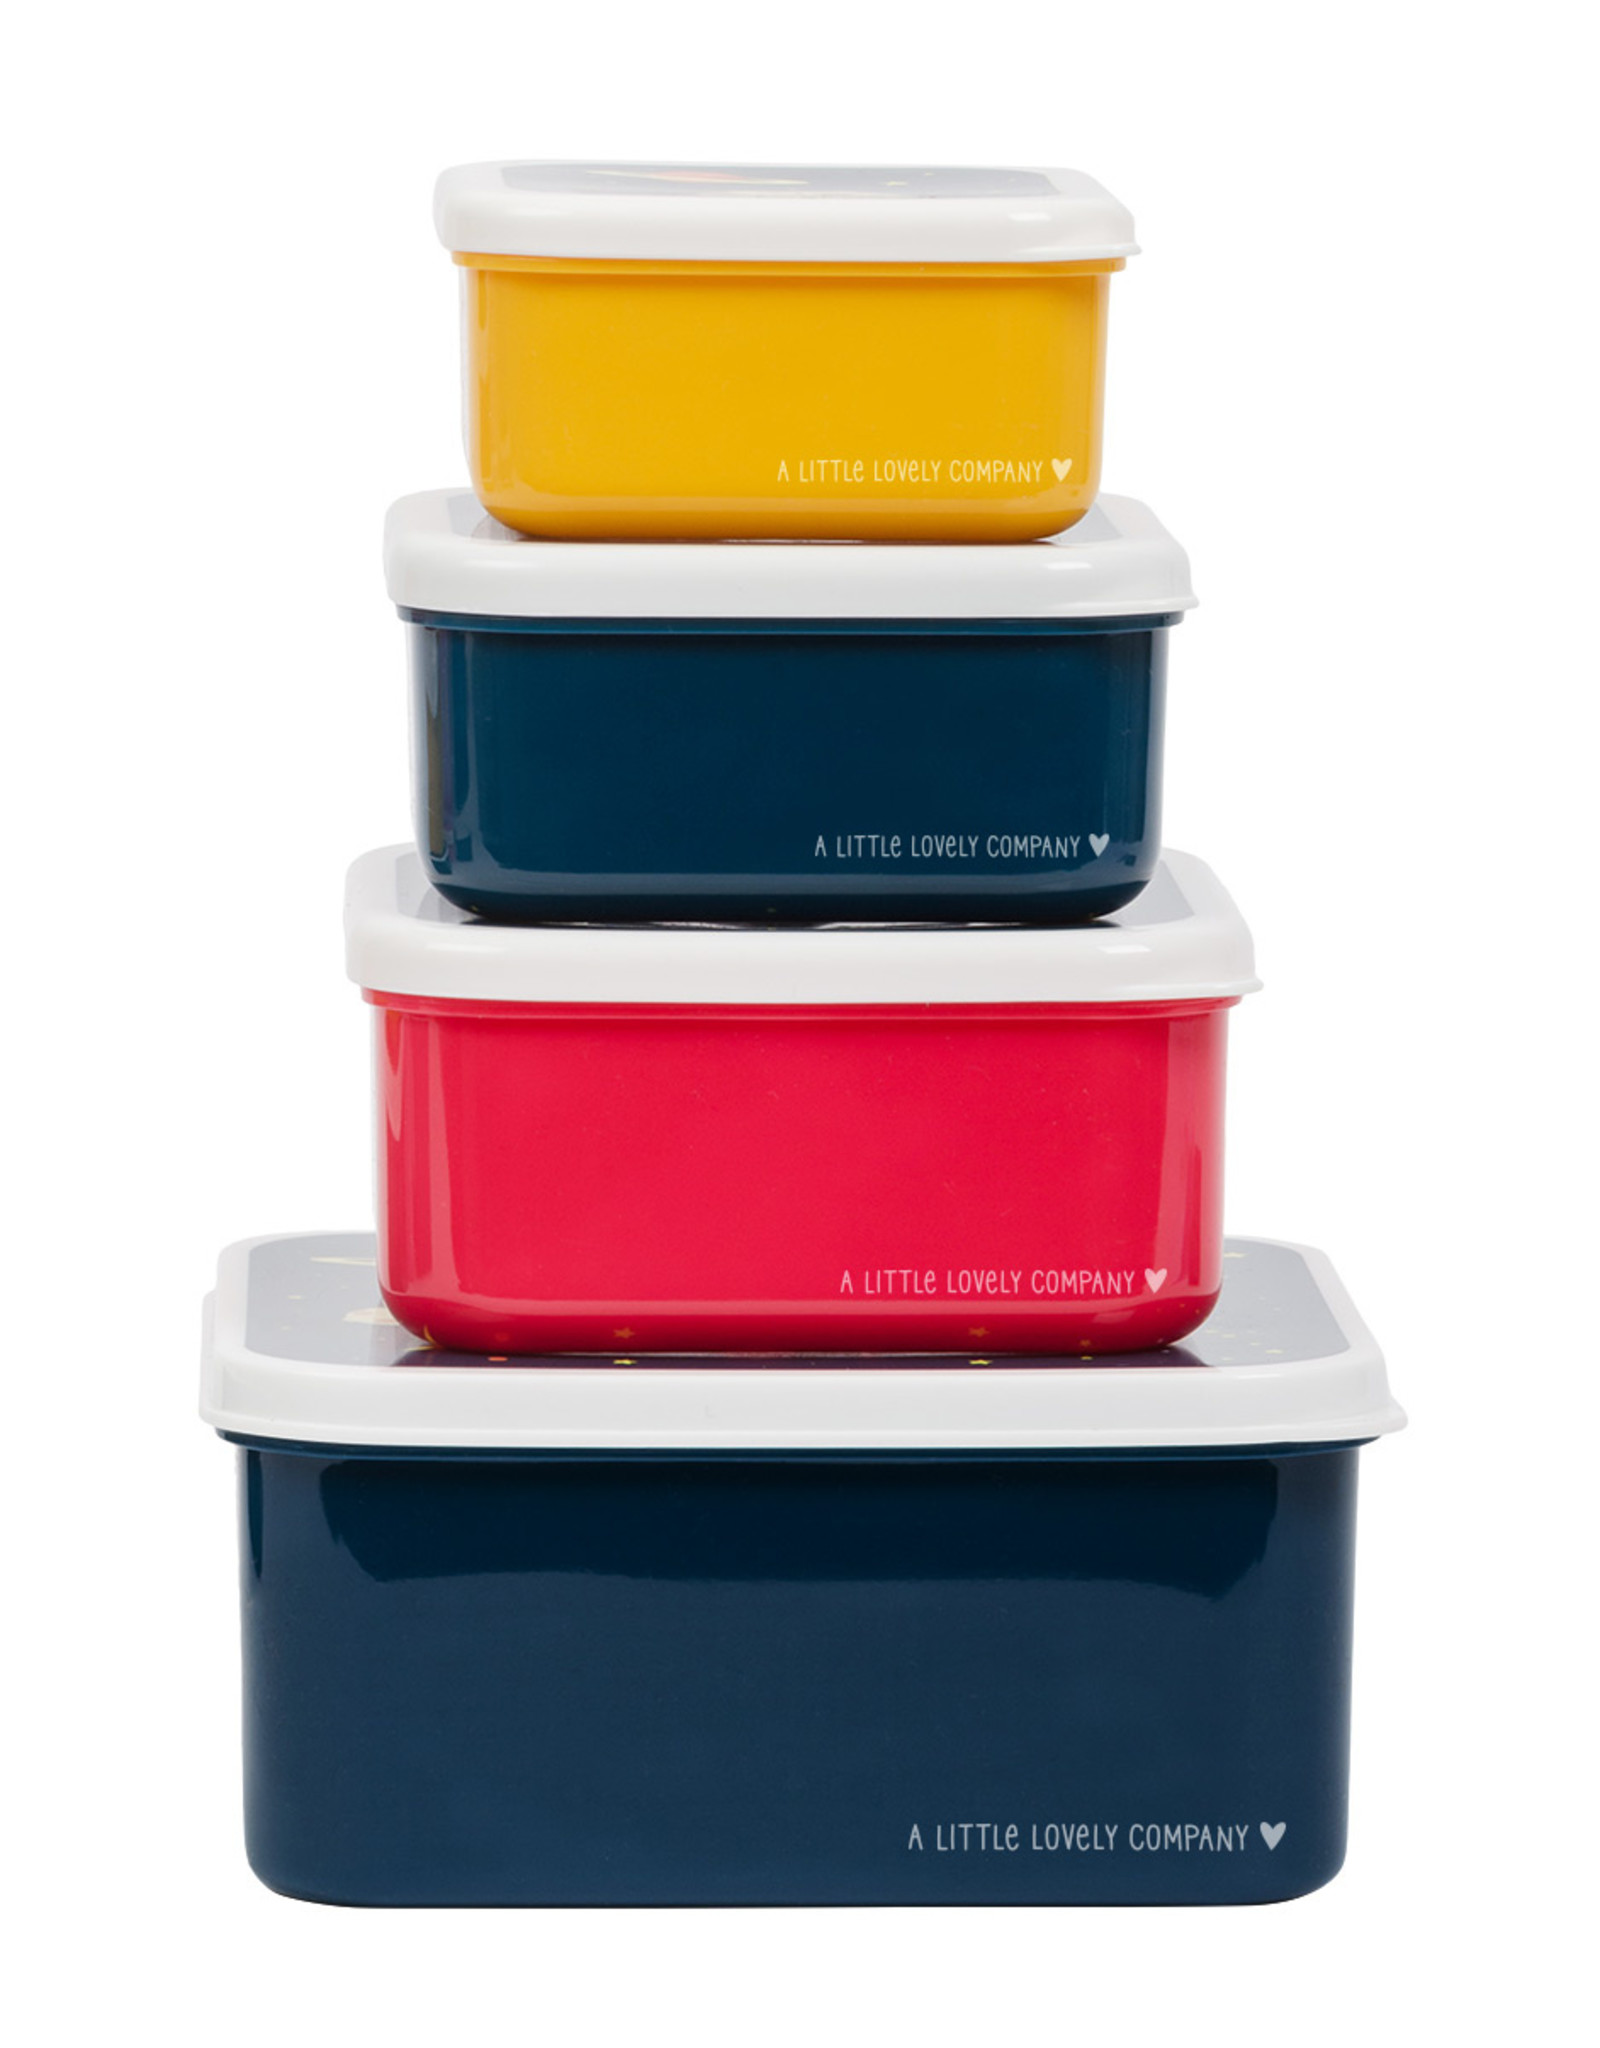 A Little Lovely Company Espace lunch & snack box set